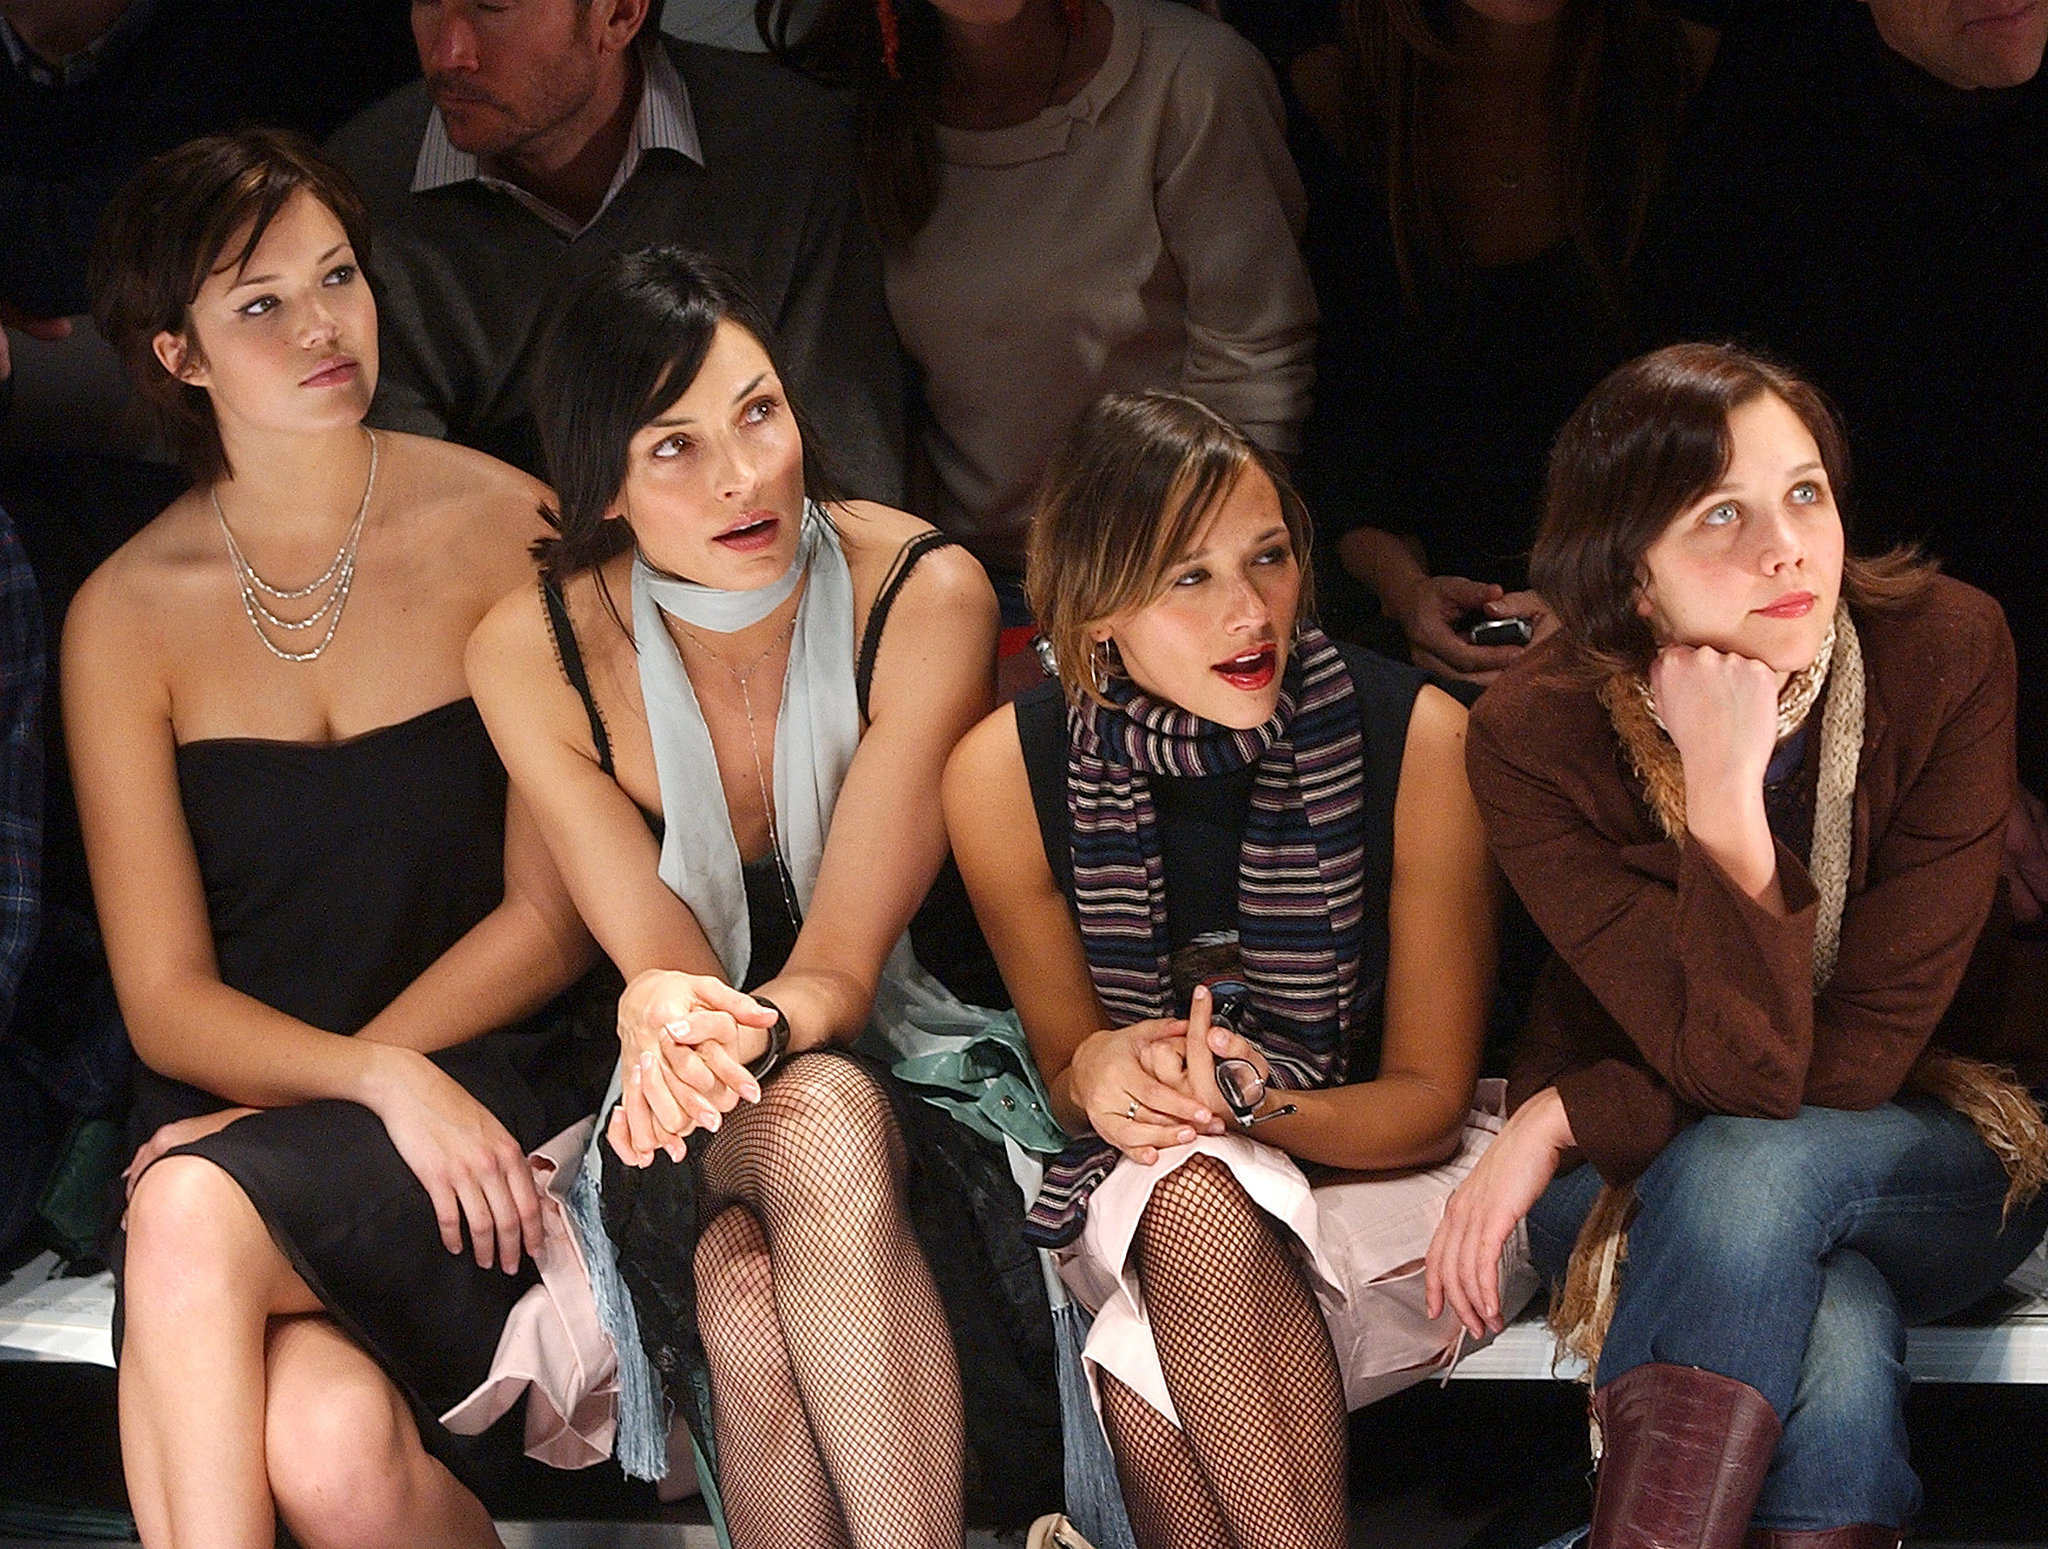 Mandy Moore, Famke Janssen, Rashida Jones, and Maggie Gyllenhaal focused at Marc Jacobs in September 2003.